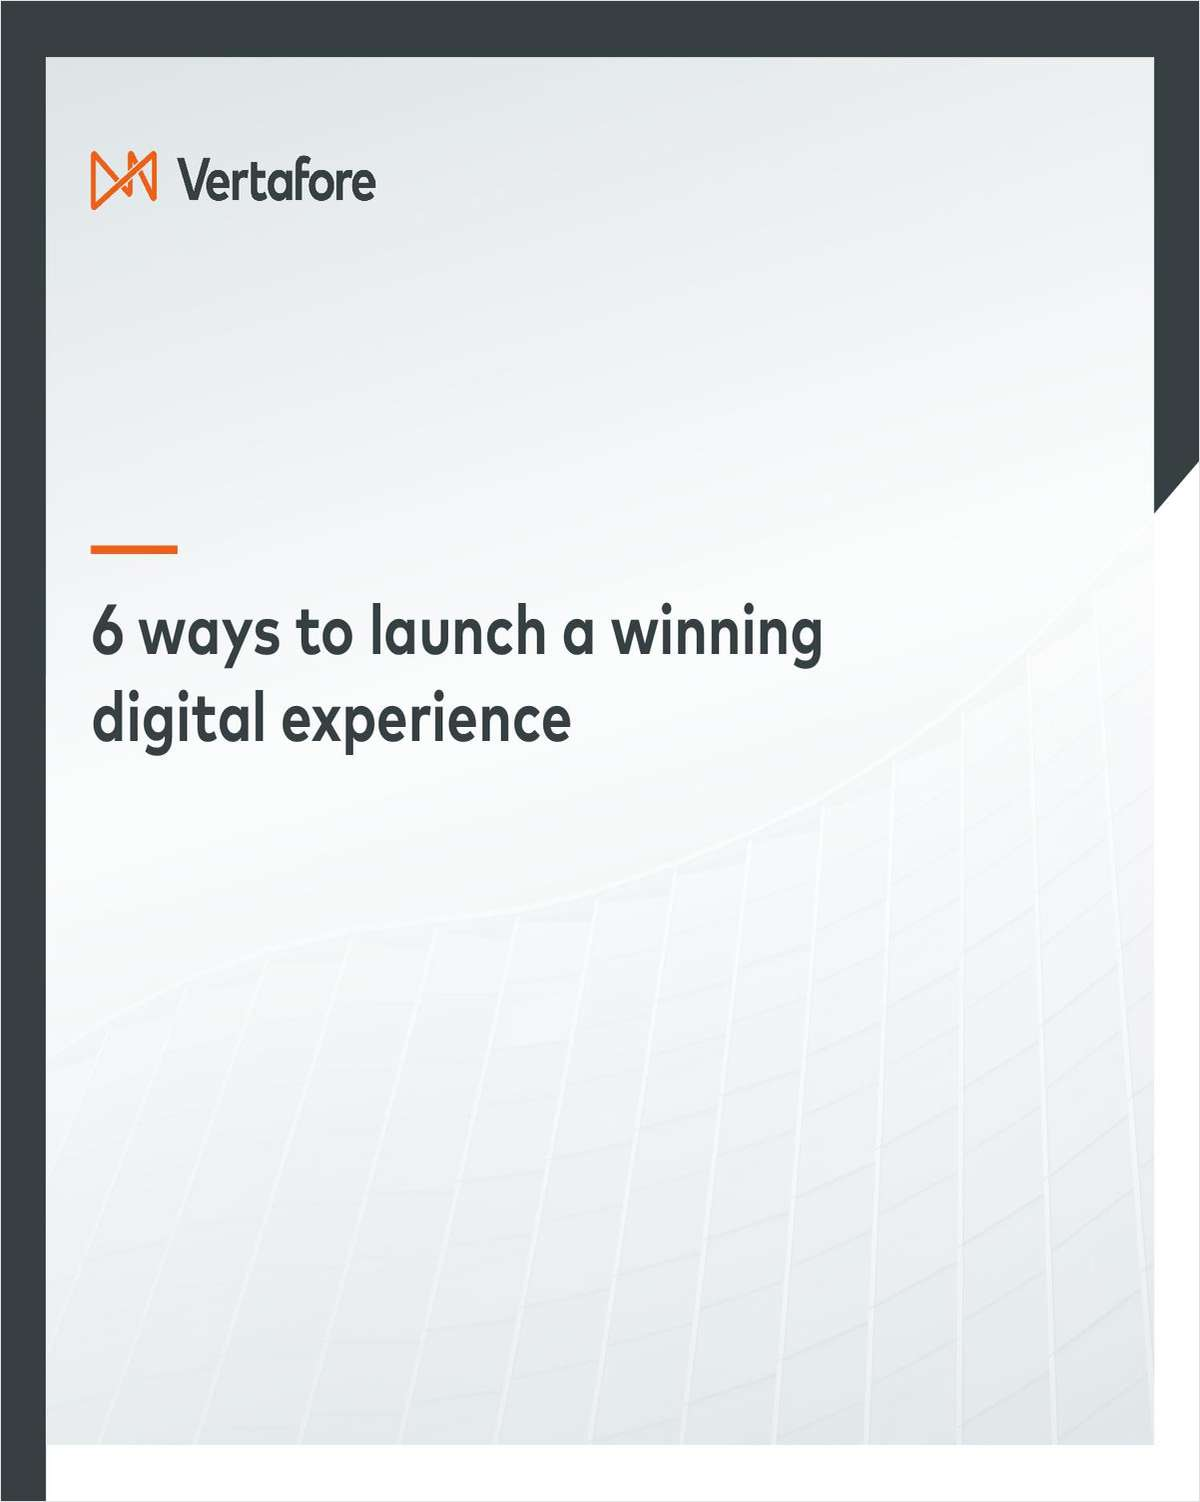 6 Ways to Launch a Winning Digital Experience